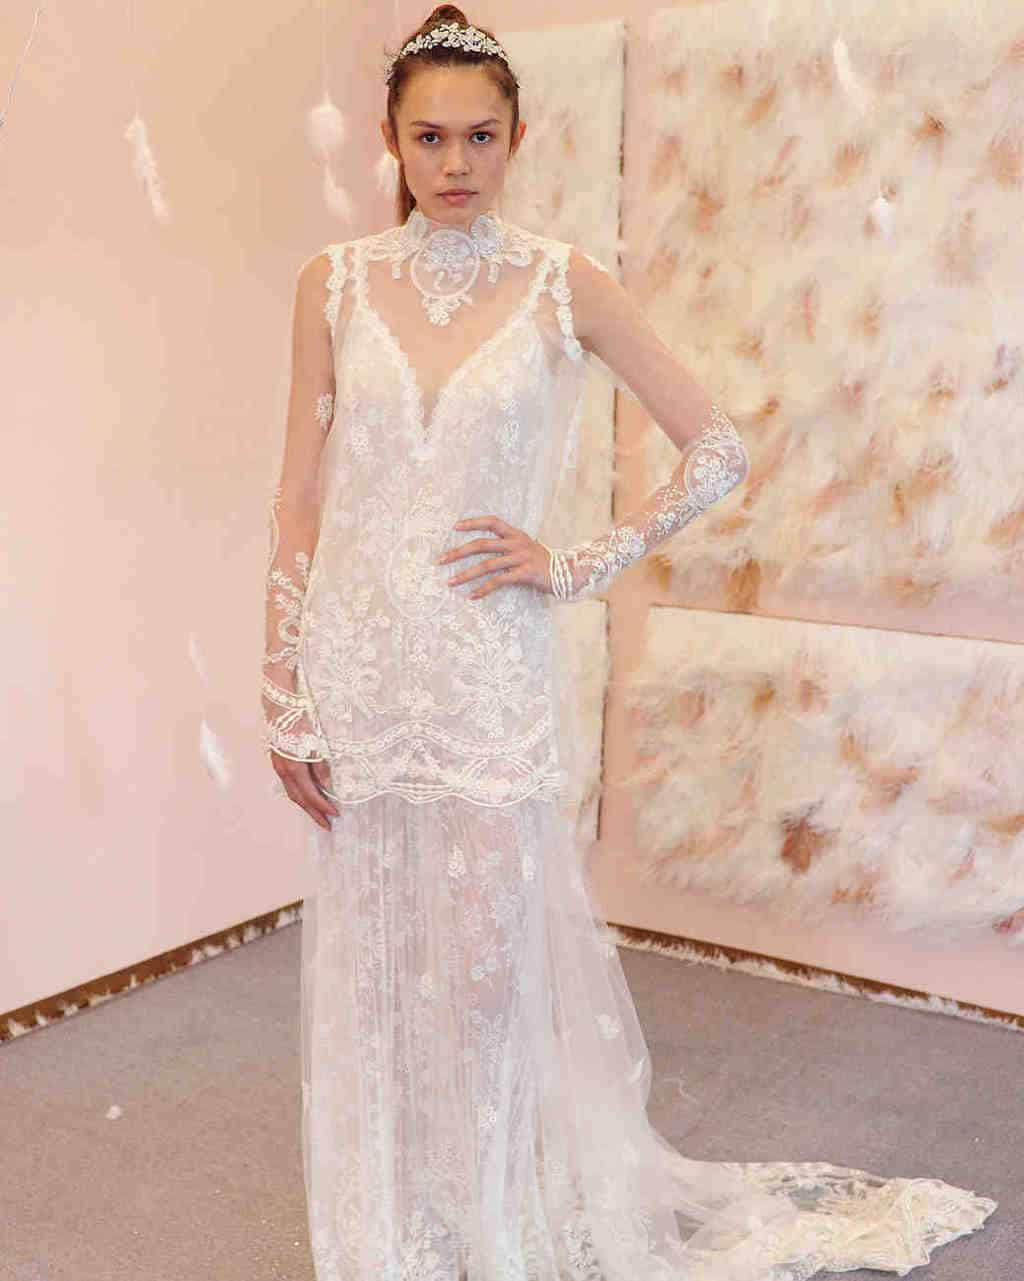 Galia-Lahav-gala-wedding-dress-fall2017-6203351-003_vert